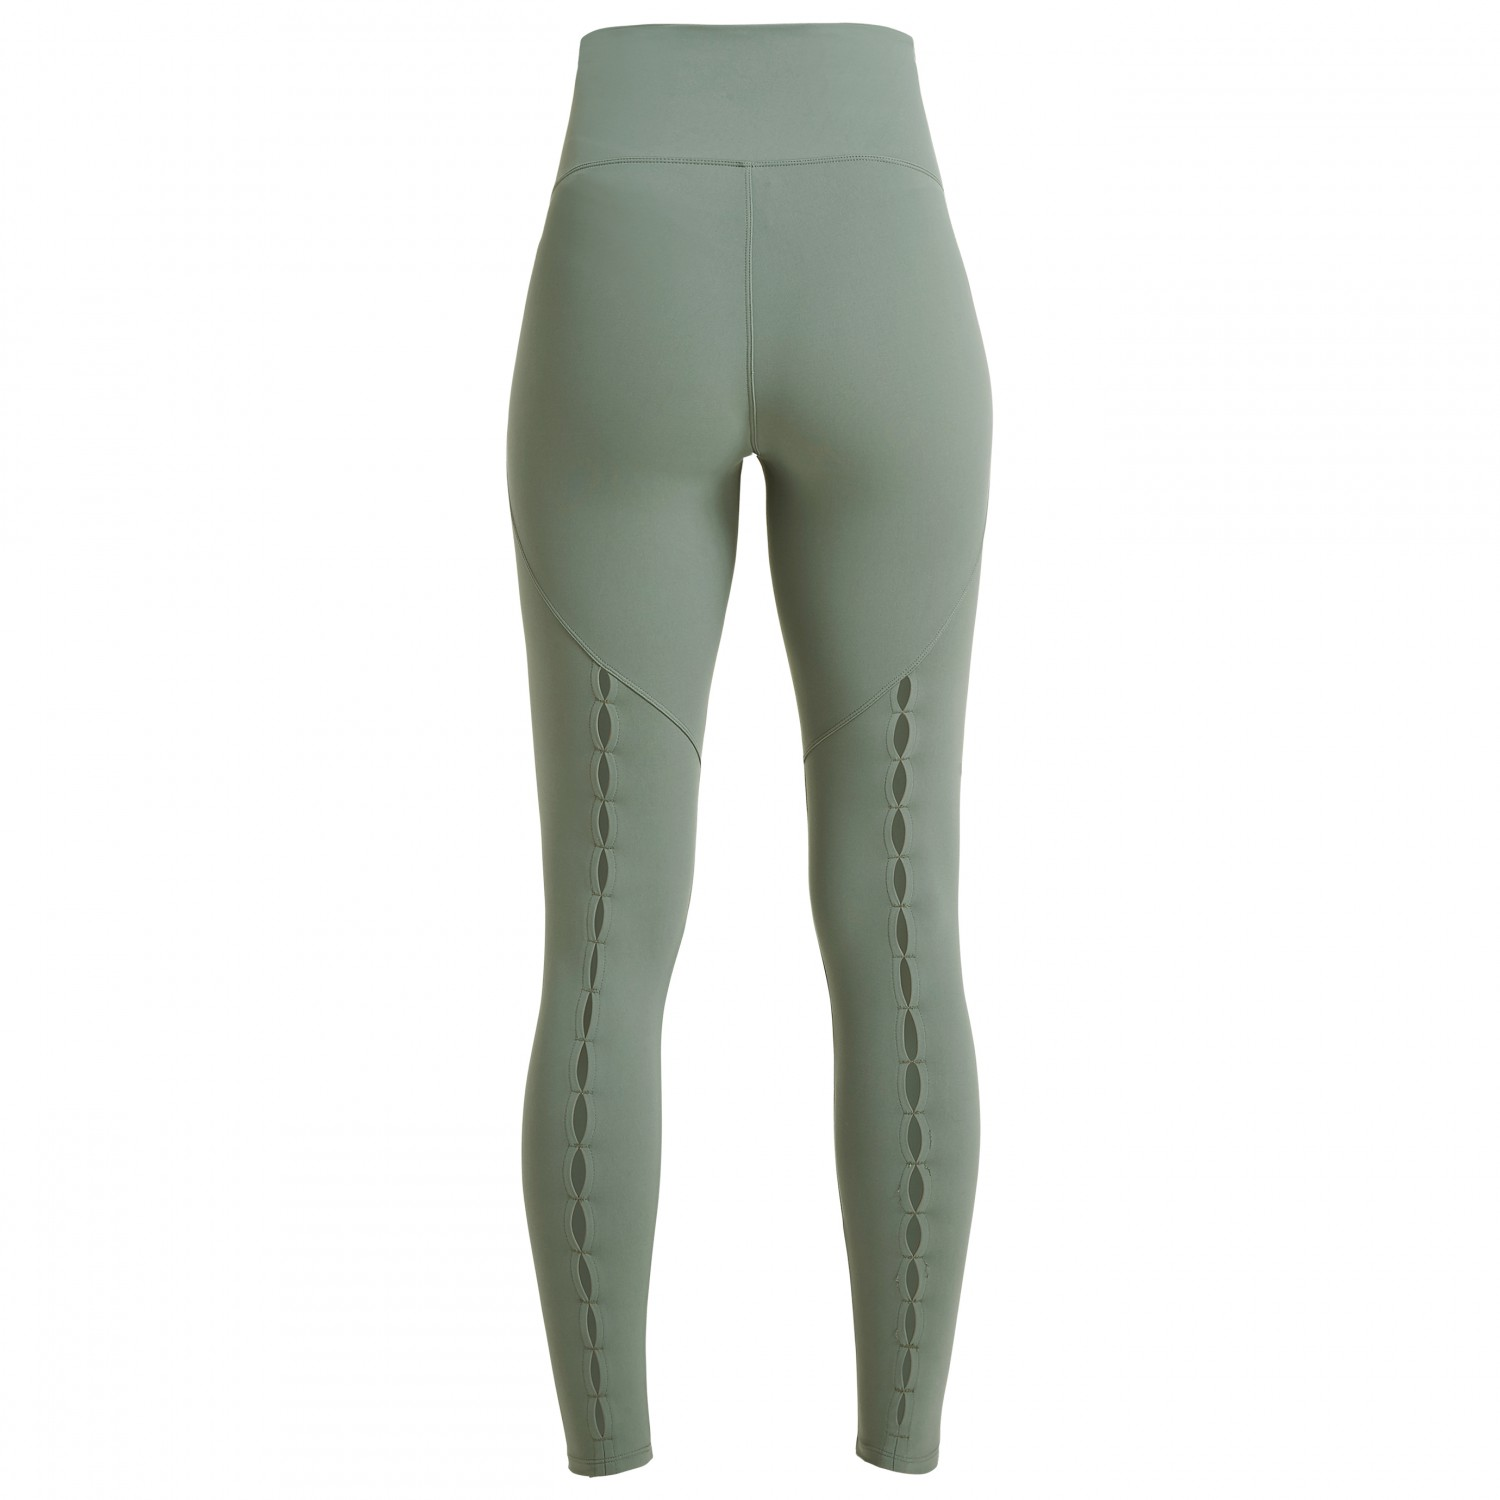 2dbfb5143bce Röhnisch Uplift Tights - Leggings Women's | Free UK Delivery ...